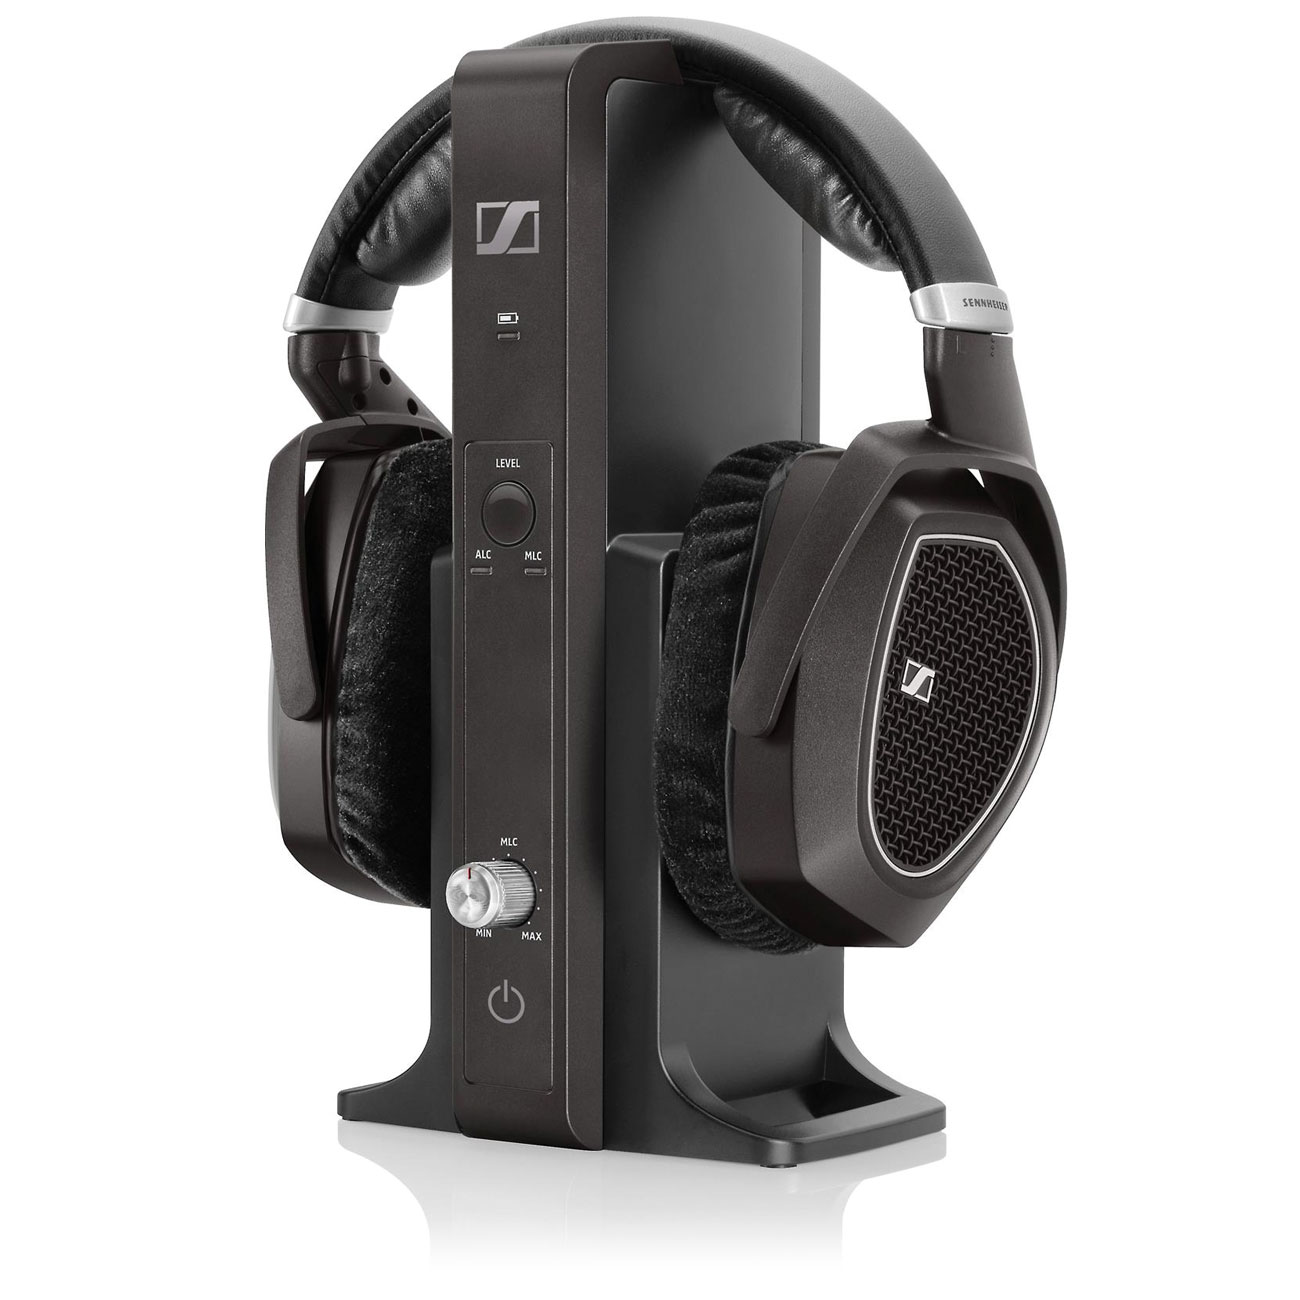 Sennheiser RS 185 TV Digital Wireless Headset Headphones